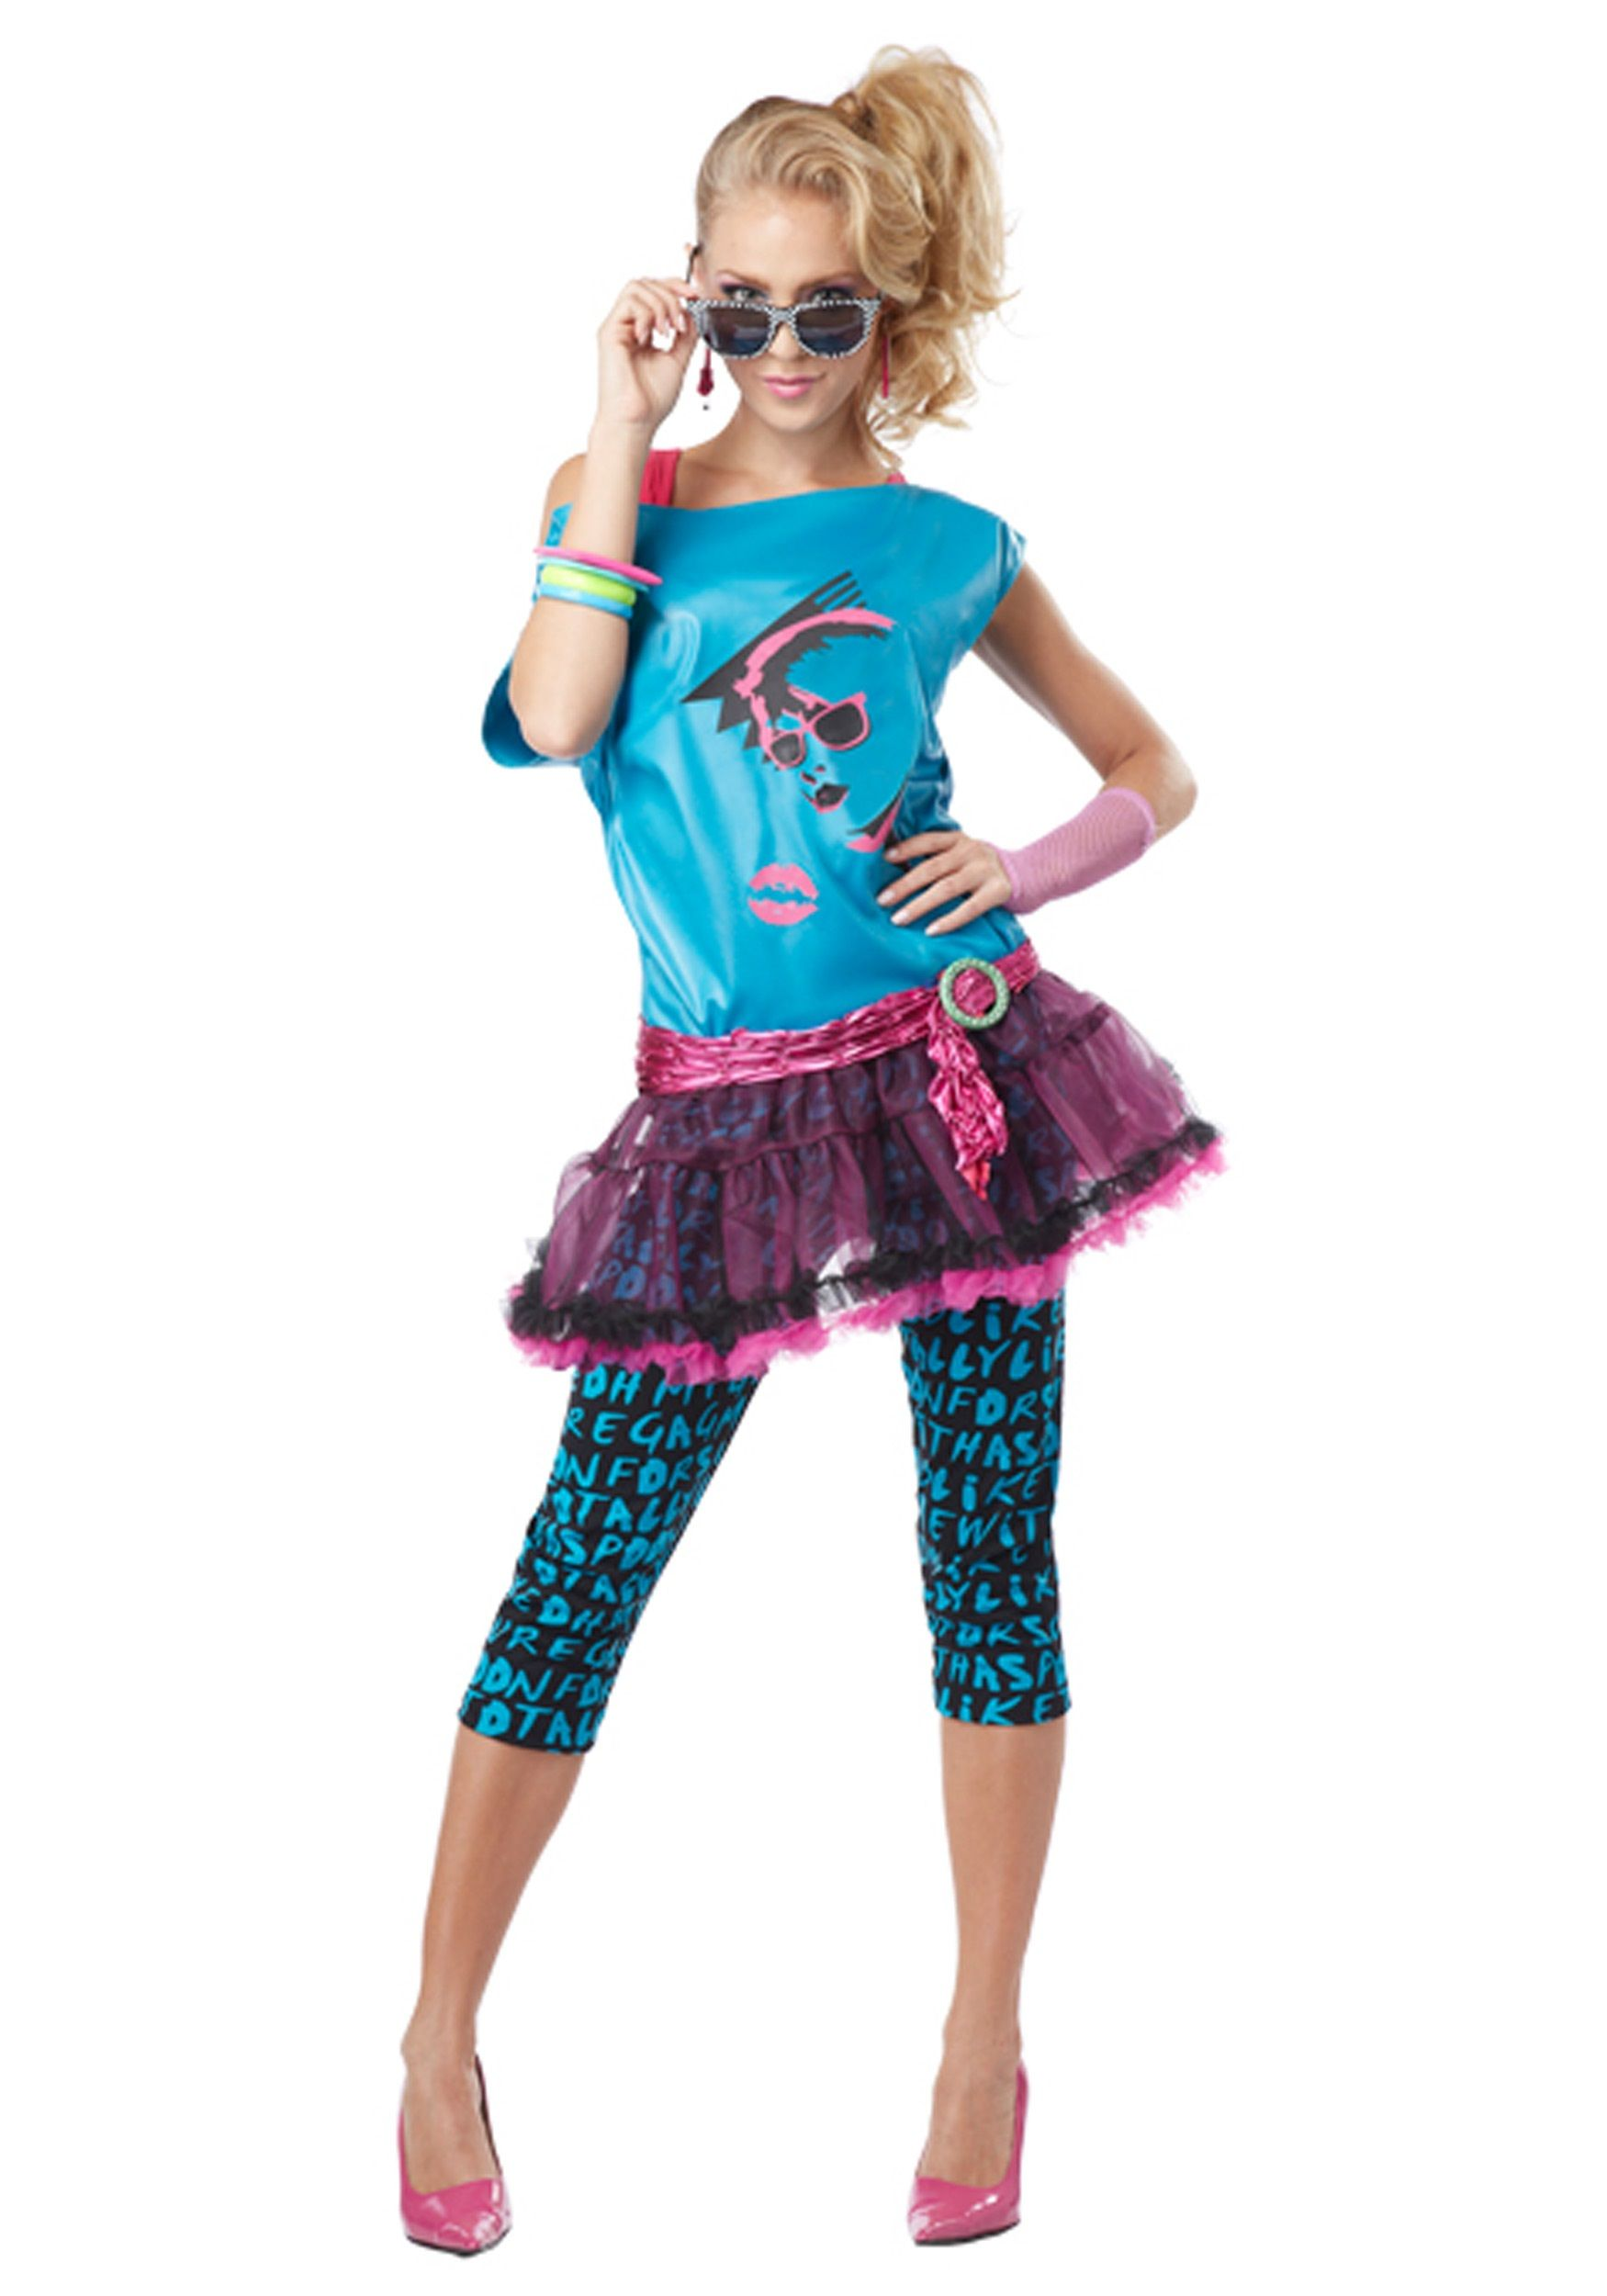 Dress code eighties - 80s Costumes Kids And Adults 80s Outfits Halloweencostumes Com